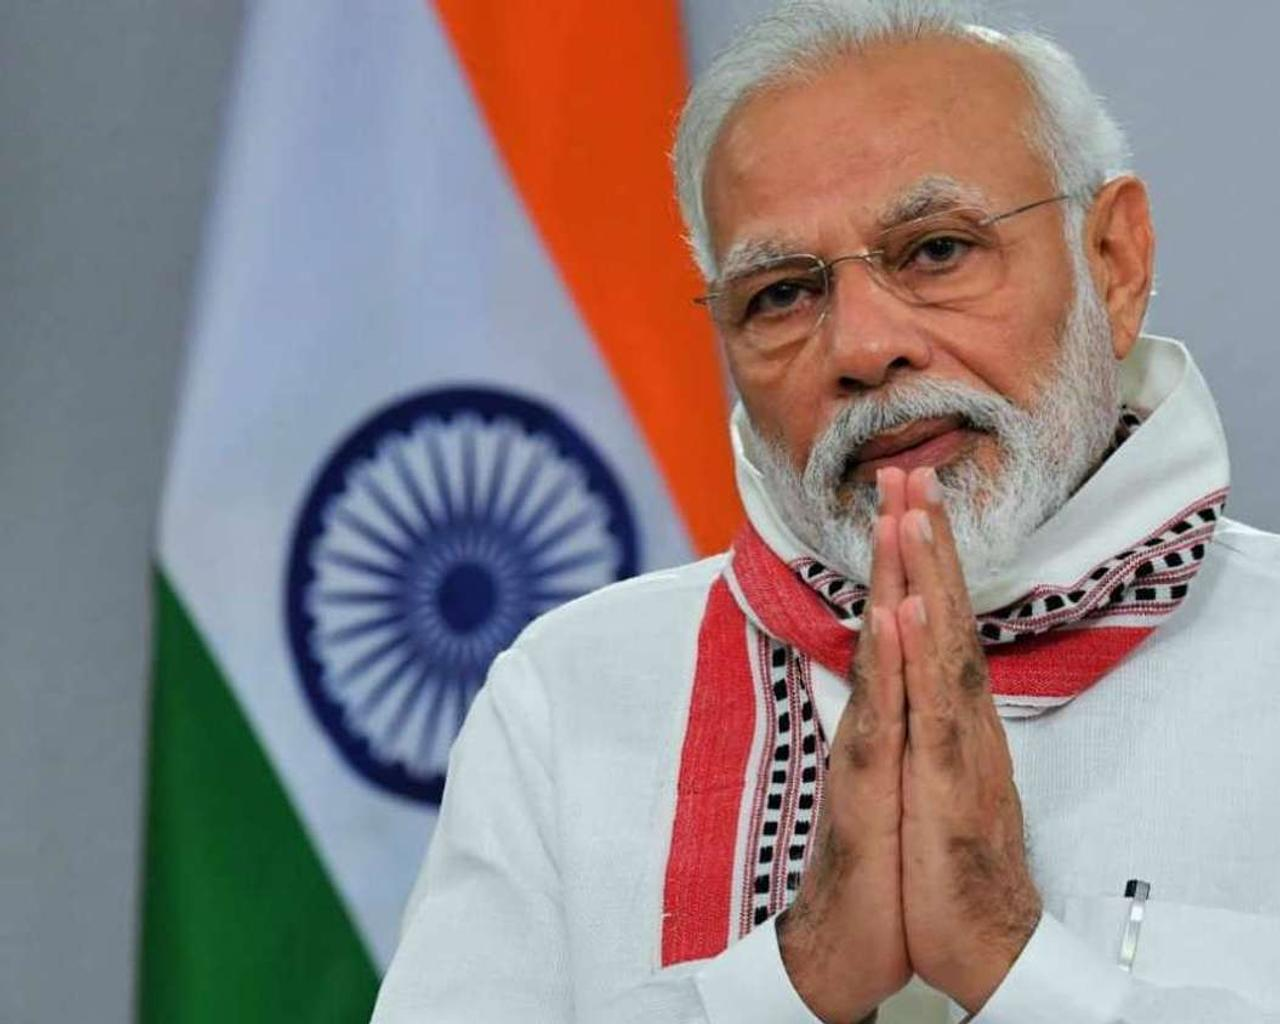 Sheikh Mujibur Rahman was nominated for the Gandhi Peace Prize after Modi did something different